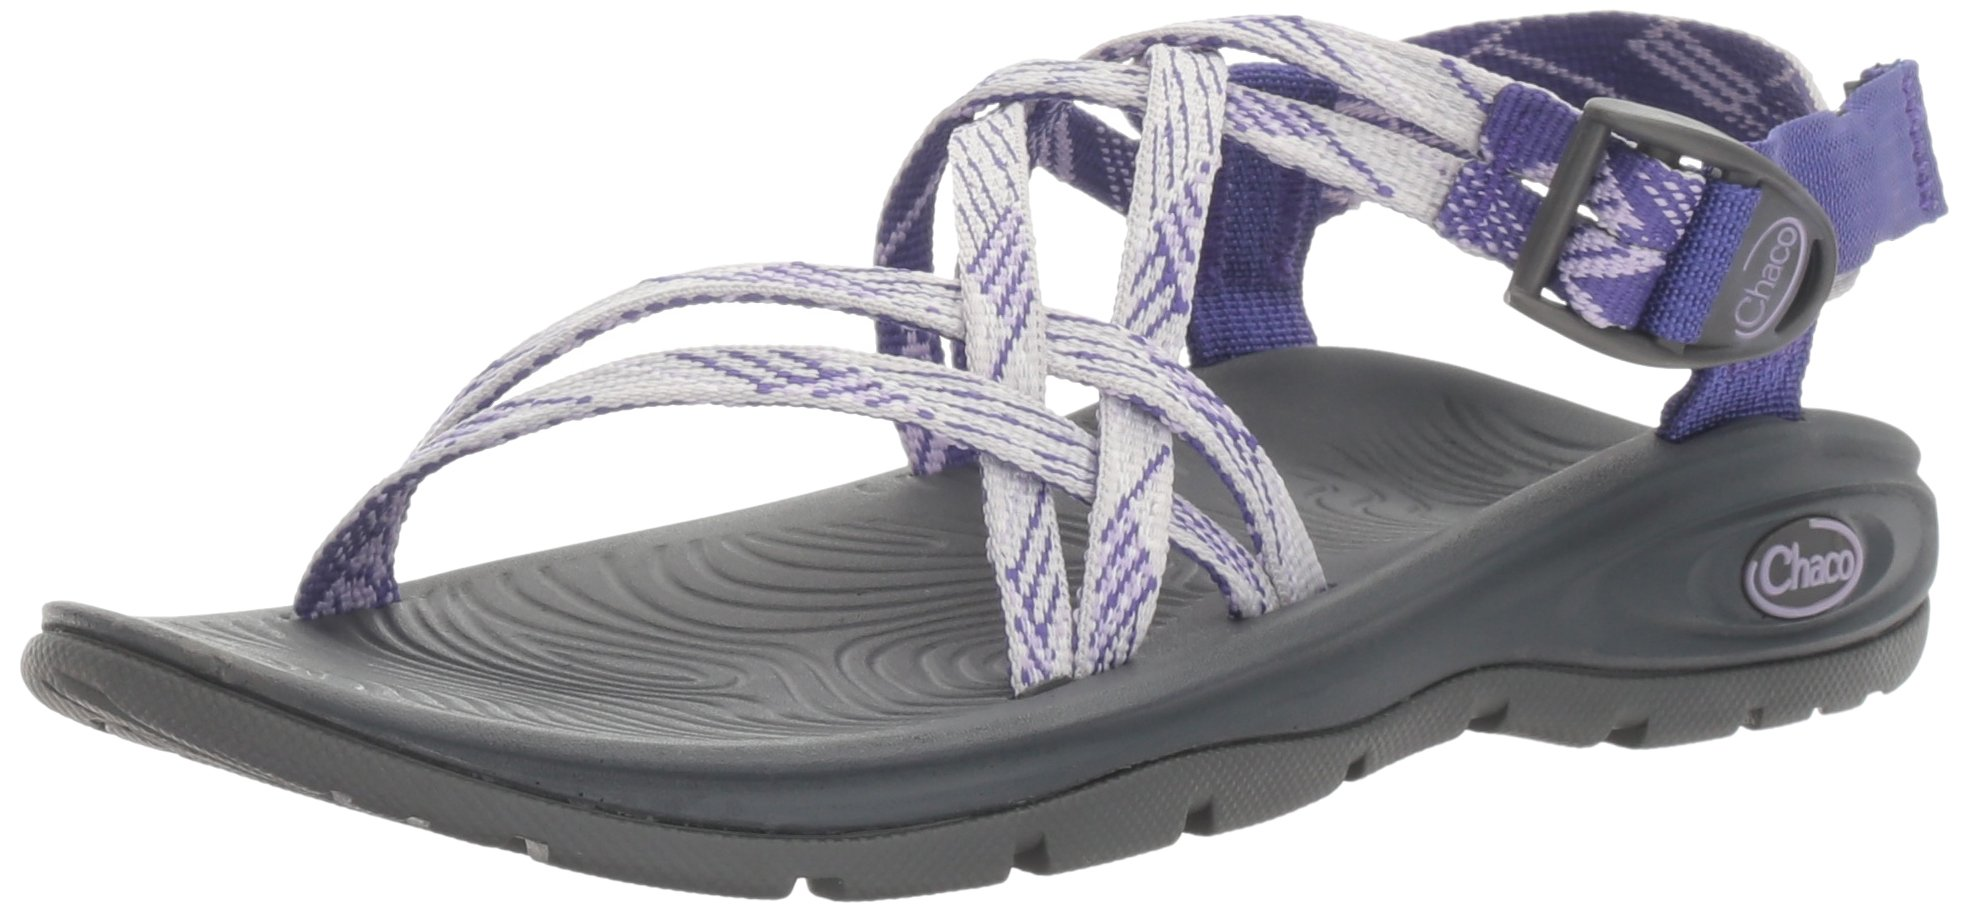 Chaco Women's Zvolv X Athletic Sandal, Lavender Liberty, 6 M US by Chaco (Image #1)